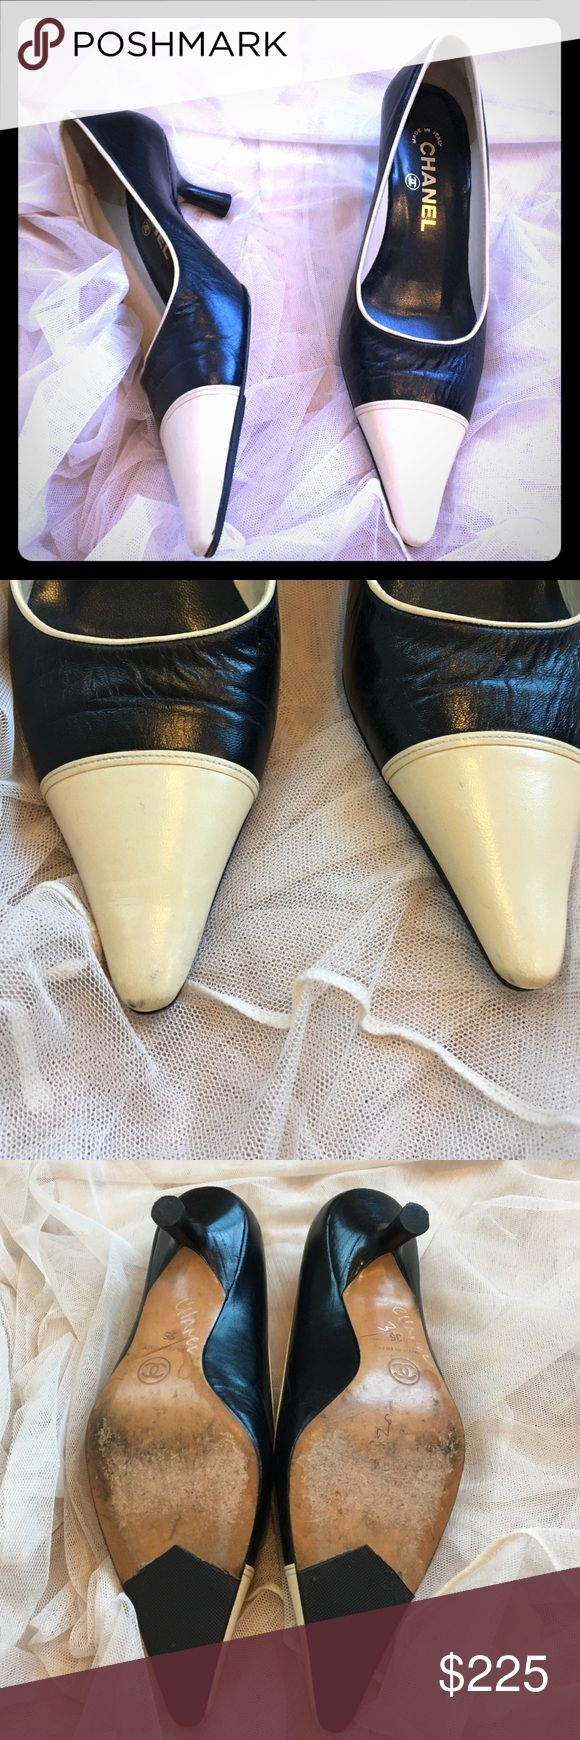 Classic black and ivory CHANEL heels!  Holiday Sale!! ❤️️ Black CHANEL leather heels. Ivory cap toe with ivory piping. Fit like a larger 35. These have been lovingly worn; some creasing in the soft leather and slight markings at top of ivory toe. Toe pads put on bottom sole for traction. Some writing on bottom of shoe. Heels are in nice shape and hard to see imperfections when on. Absolutely stunning shoe; price reflects wear, please no low ball offers; reasonable offers only  CHANEL Shoes…